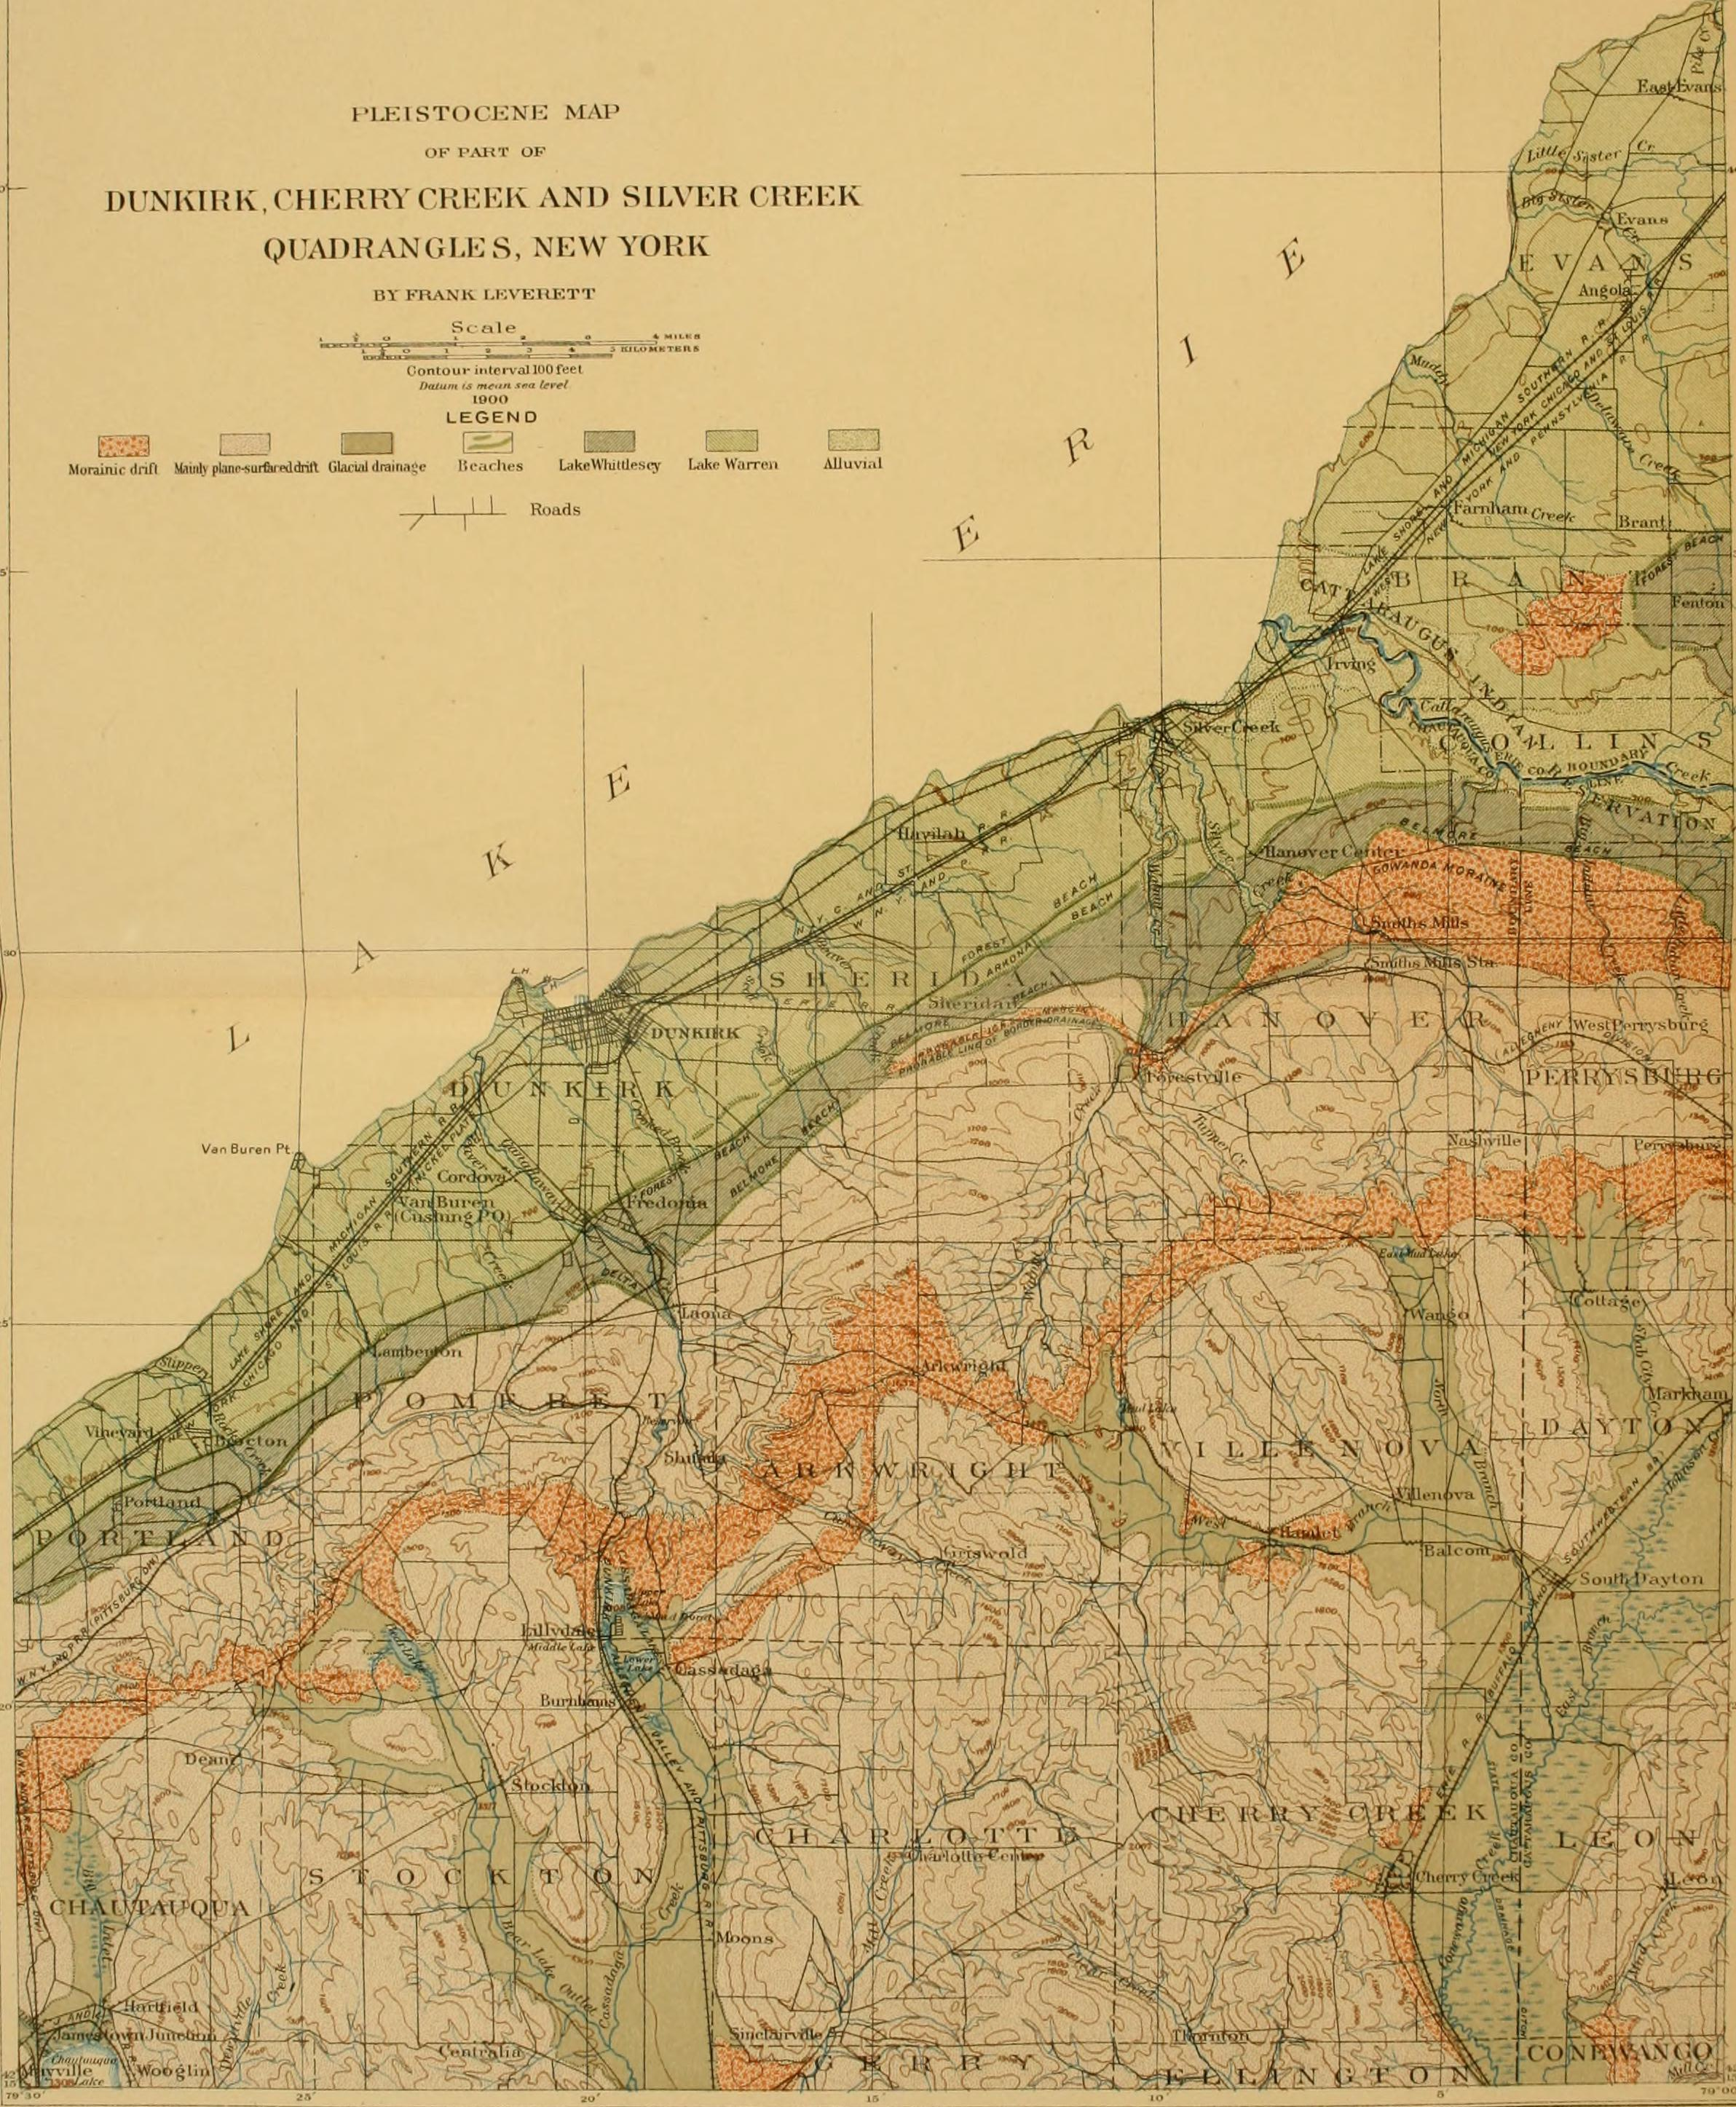 File Glacial Formations And Drainage Features Of The Erie And Ohio